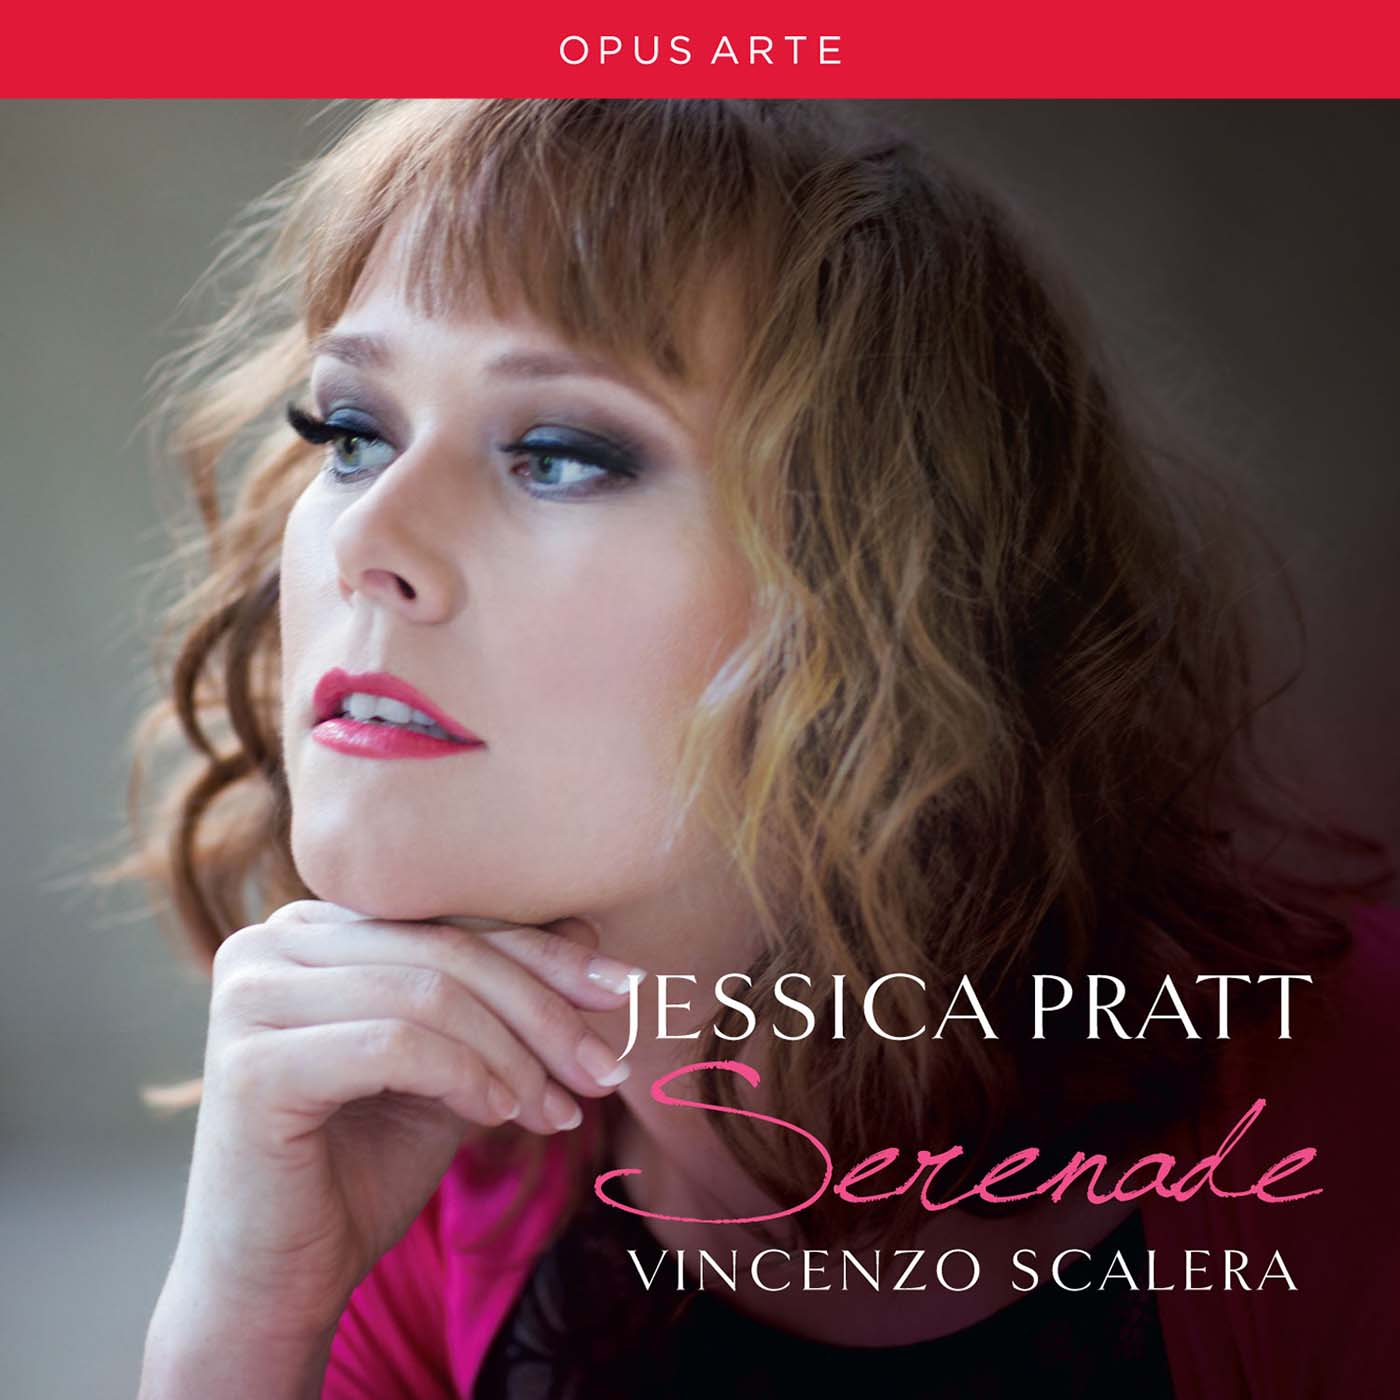 SINGER SPOTLIGHT: Soprano JESSICA PRATT's début solo recital disc SERENADE on the Opus Arte label [Cover art © by Opus Arte]